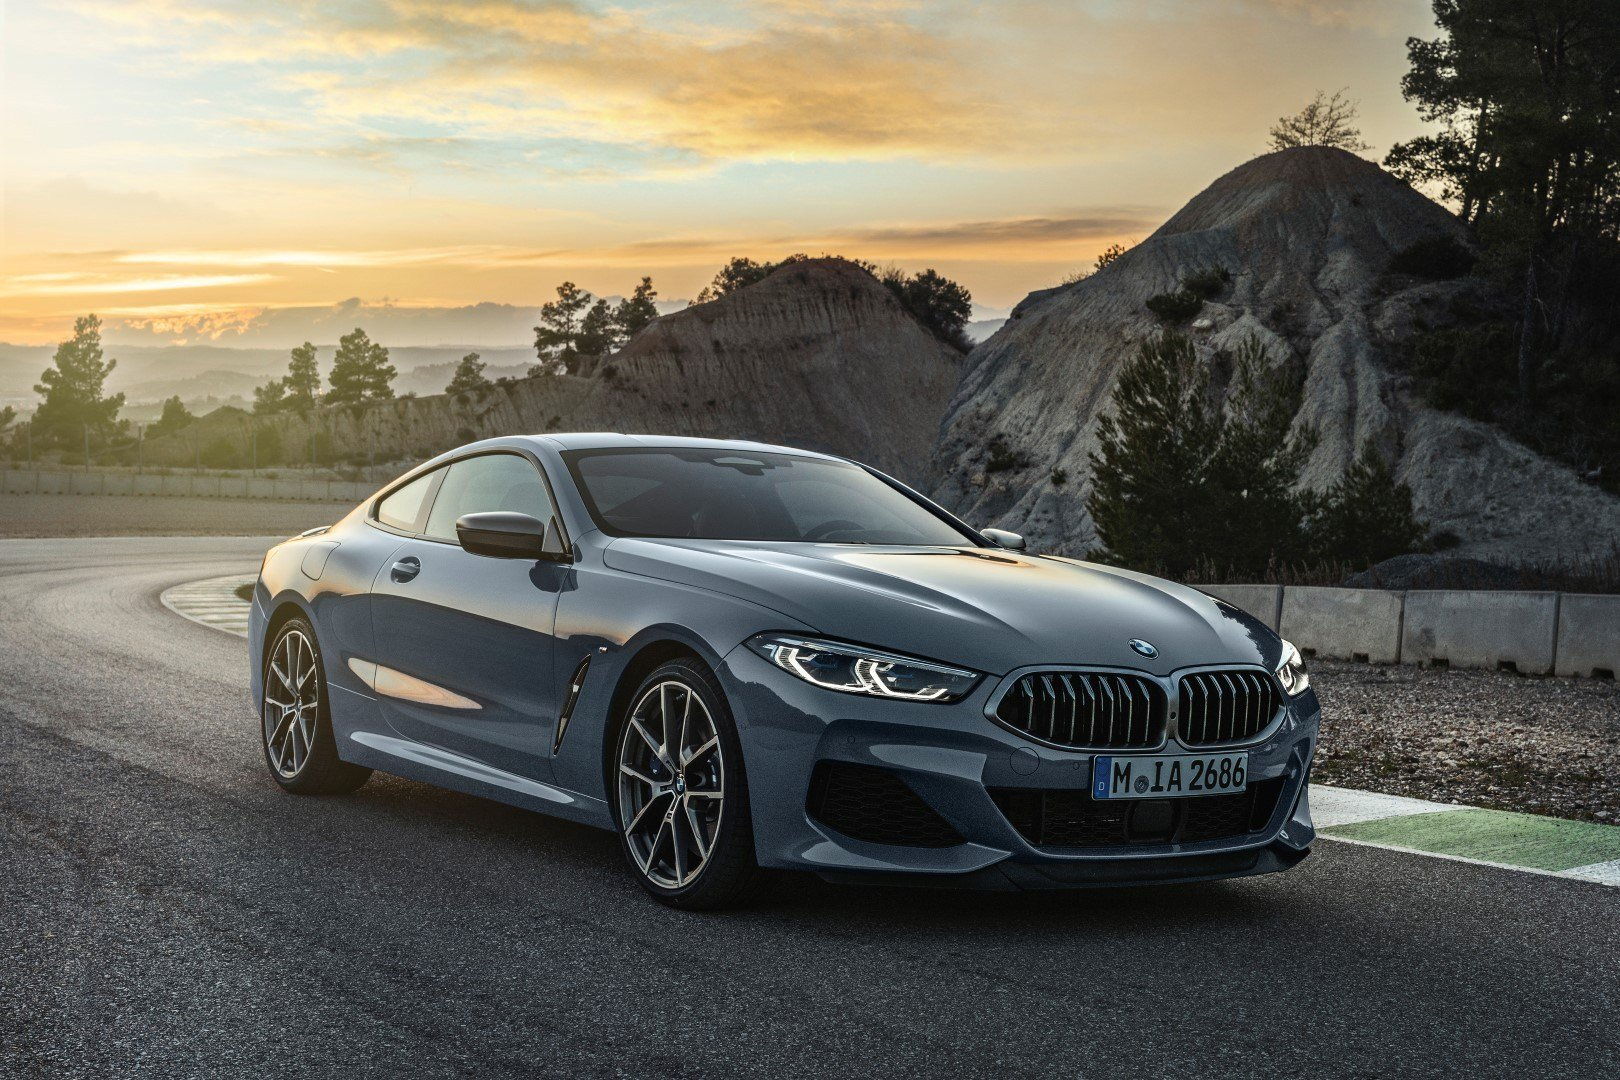 Latest The New Bmw 8 Series Coupe Finally Revealed With Superb Styling Free Download